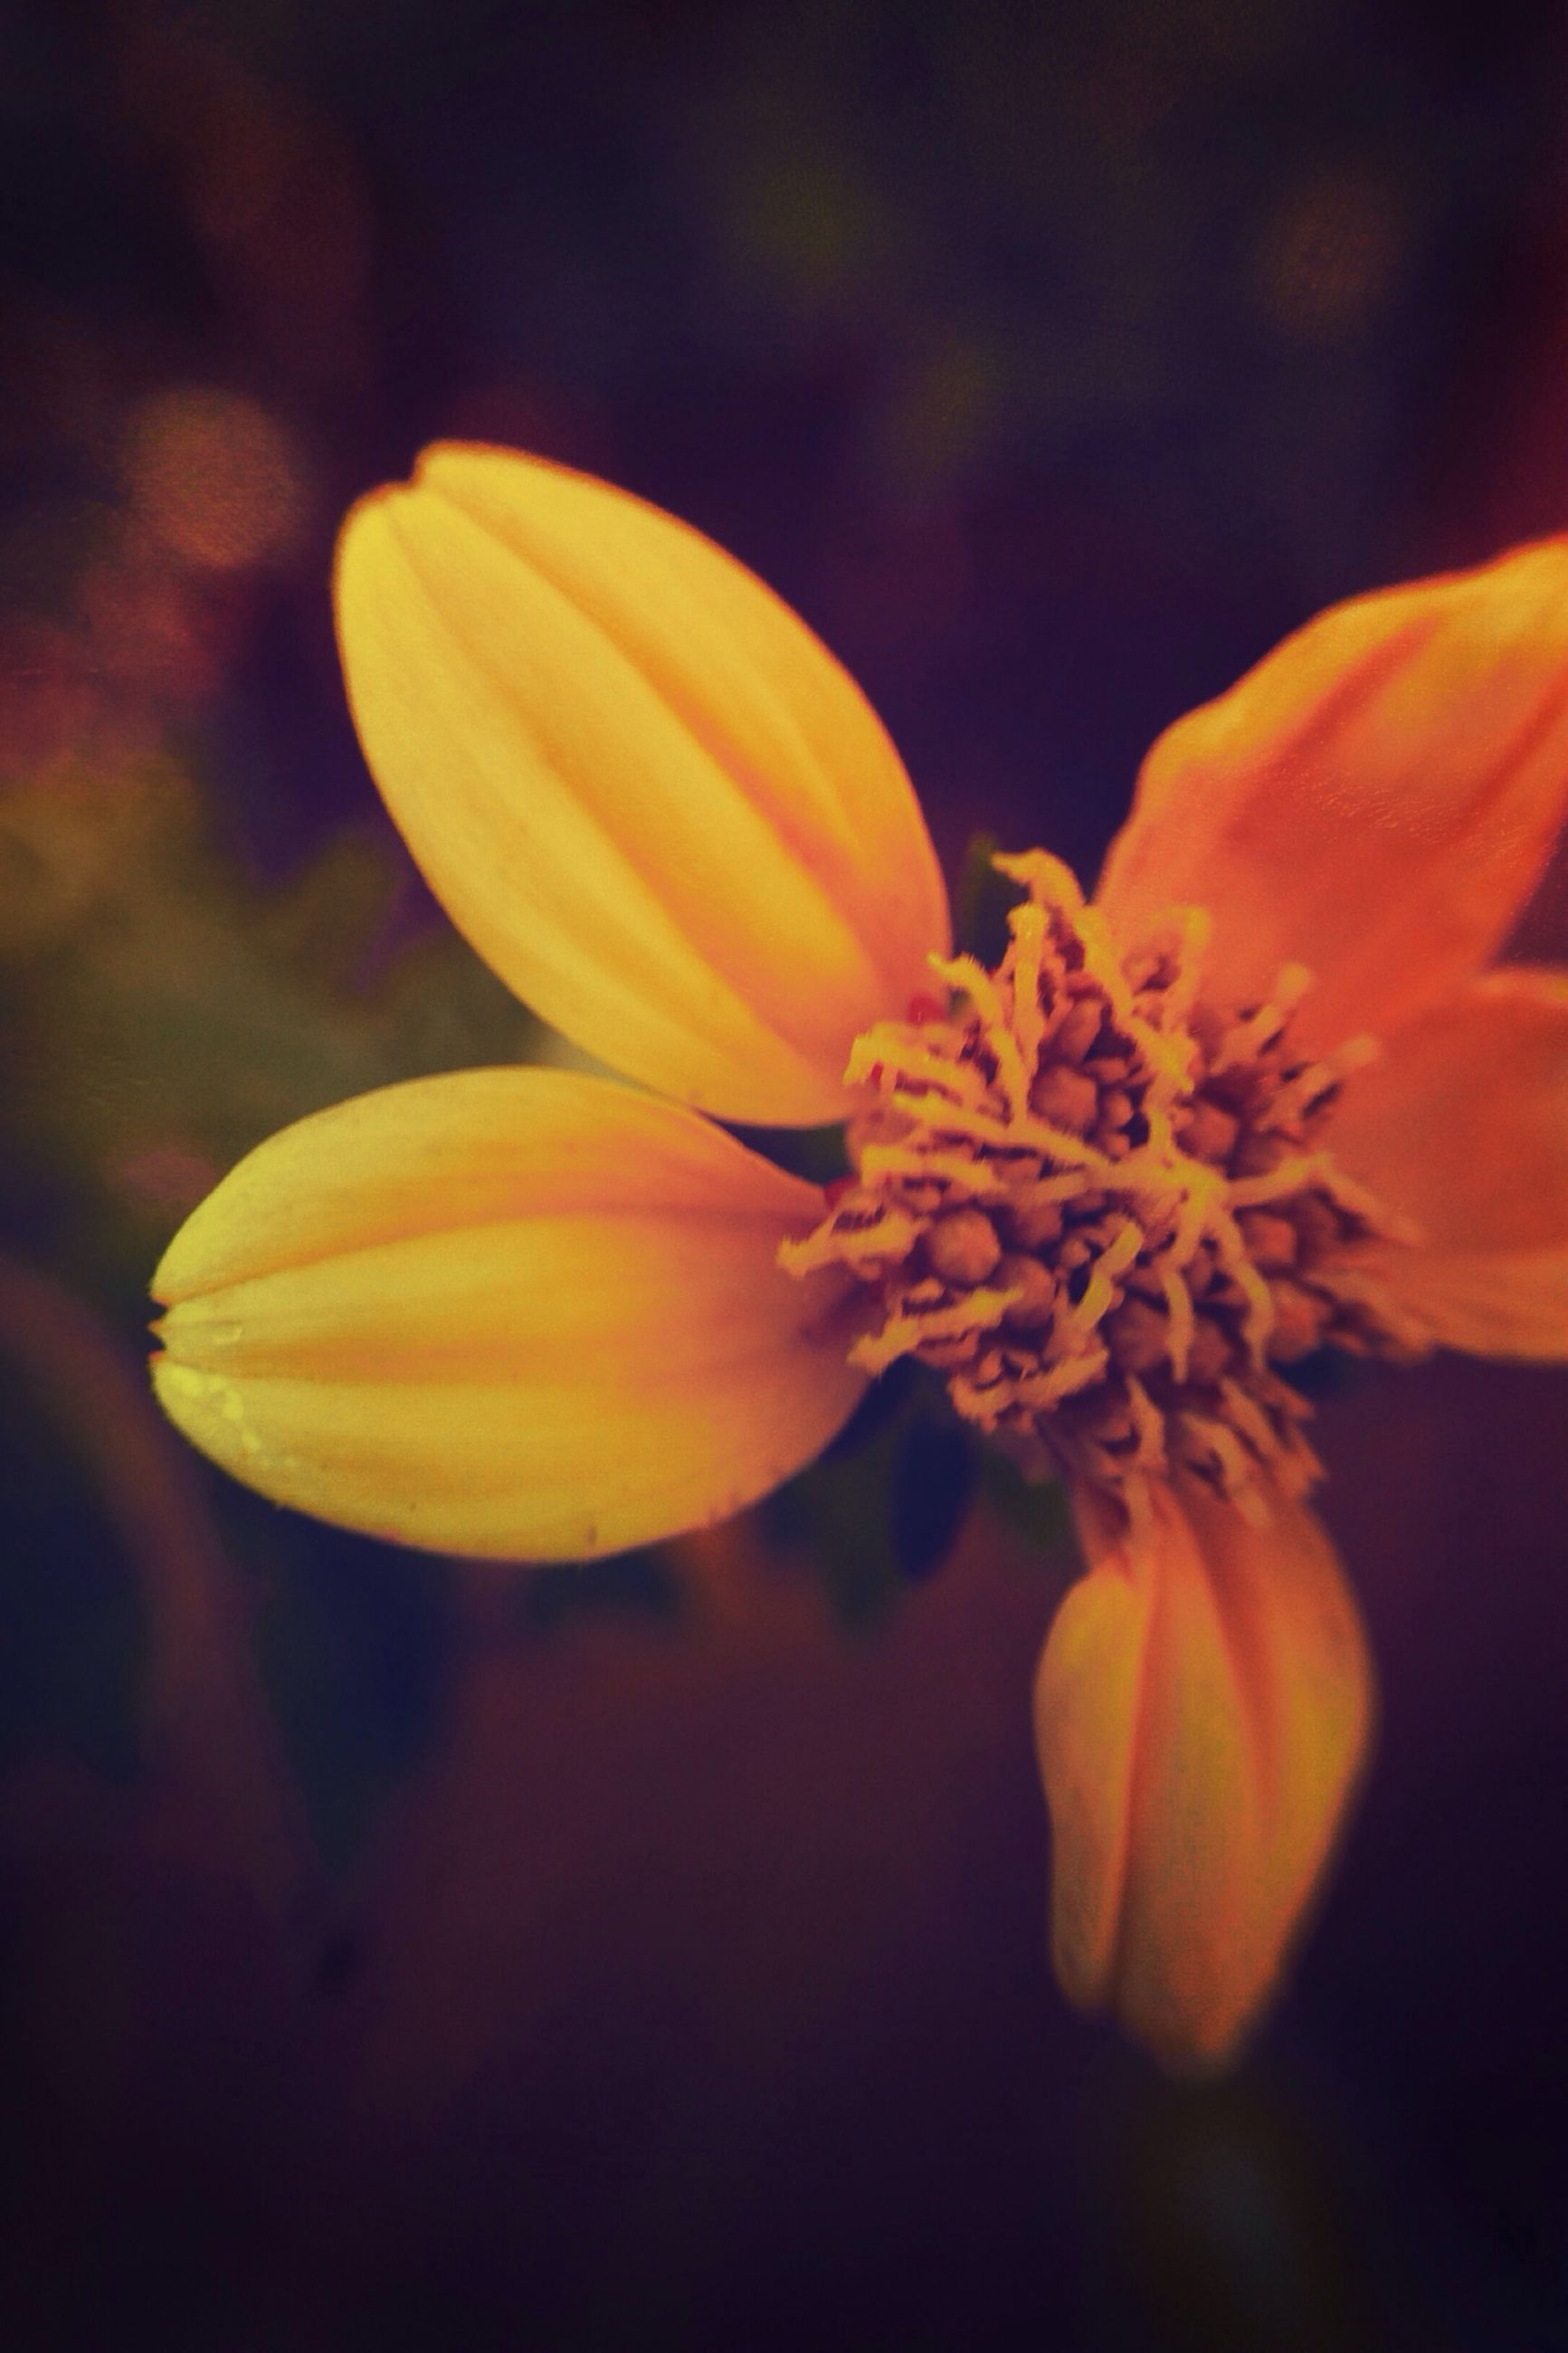 flower, petal, freshness, fragility, flower head, close-up, growth, beauty in nature, yellow, nature, focus on foreground, pollen, single flower, blooming, plant, selective focus, stamen, in bloom, blossom, botany